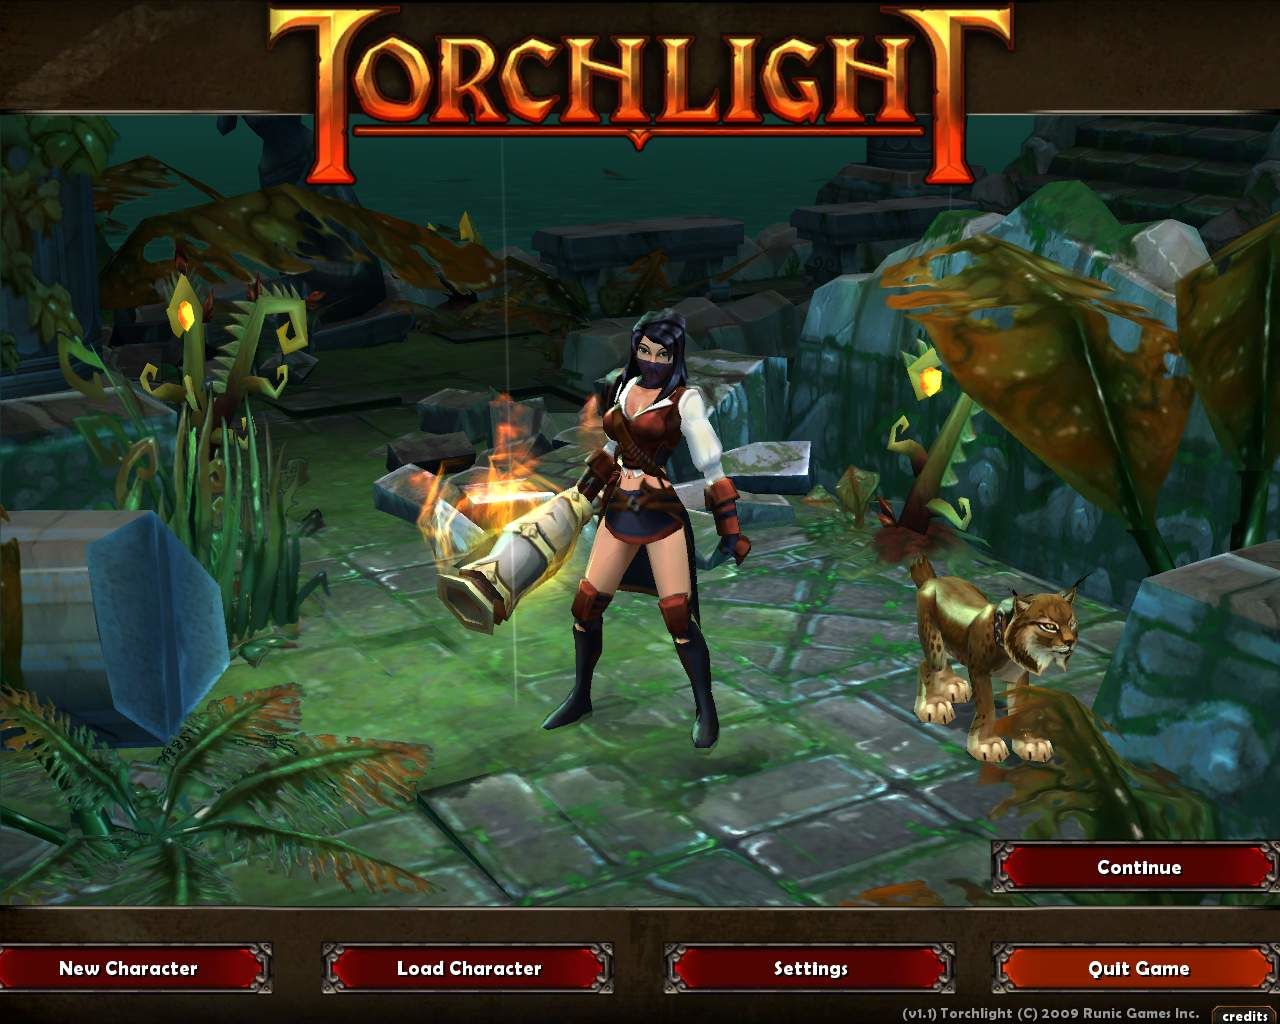 Torchlight Windows You can see your character on the title screen